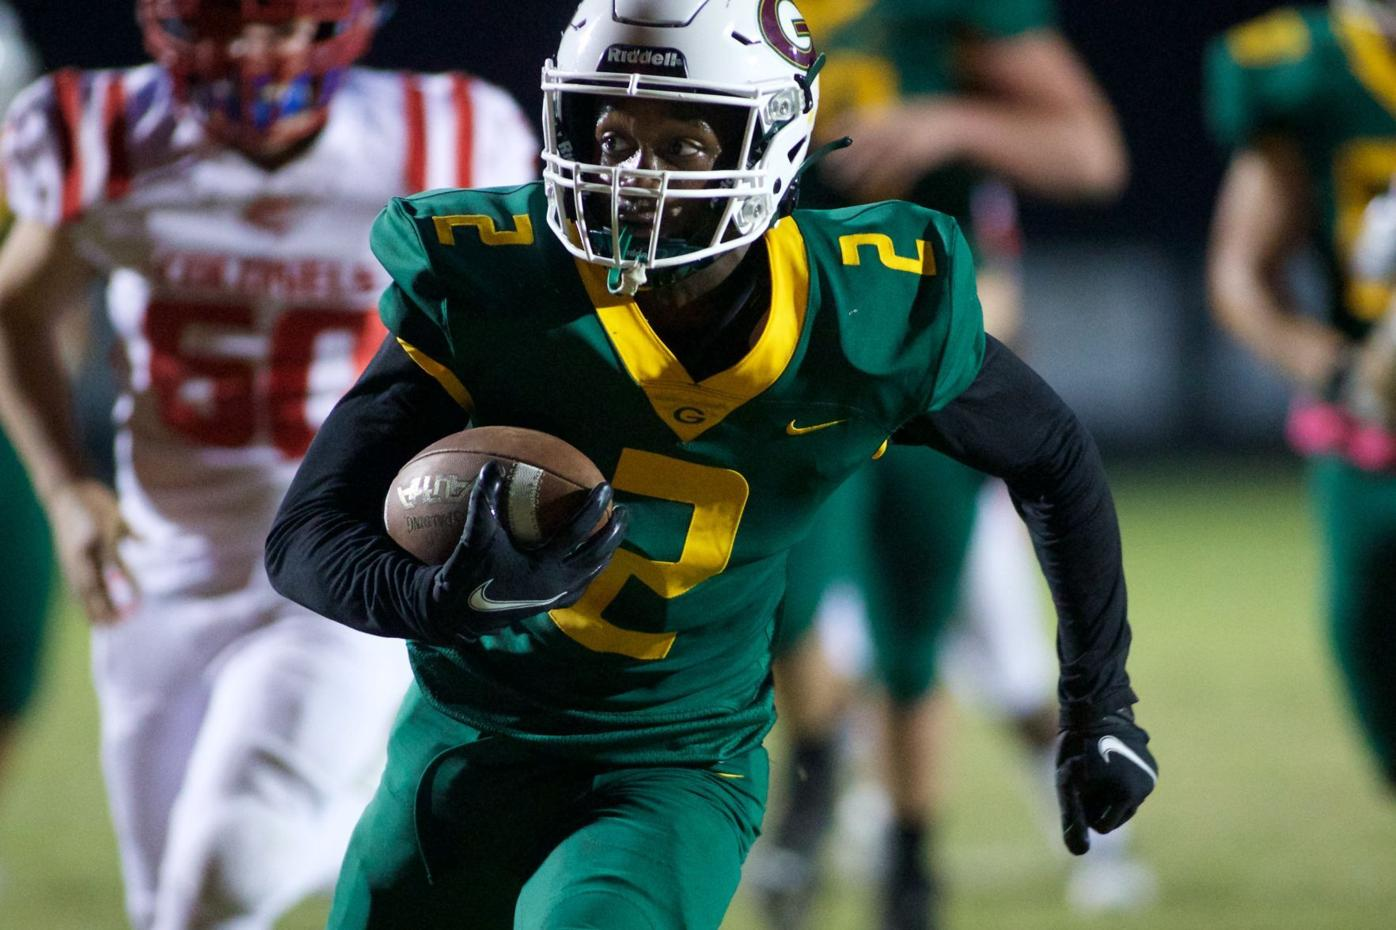 211001-sports-Christian County football at GW _outbound 10.jpg